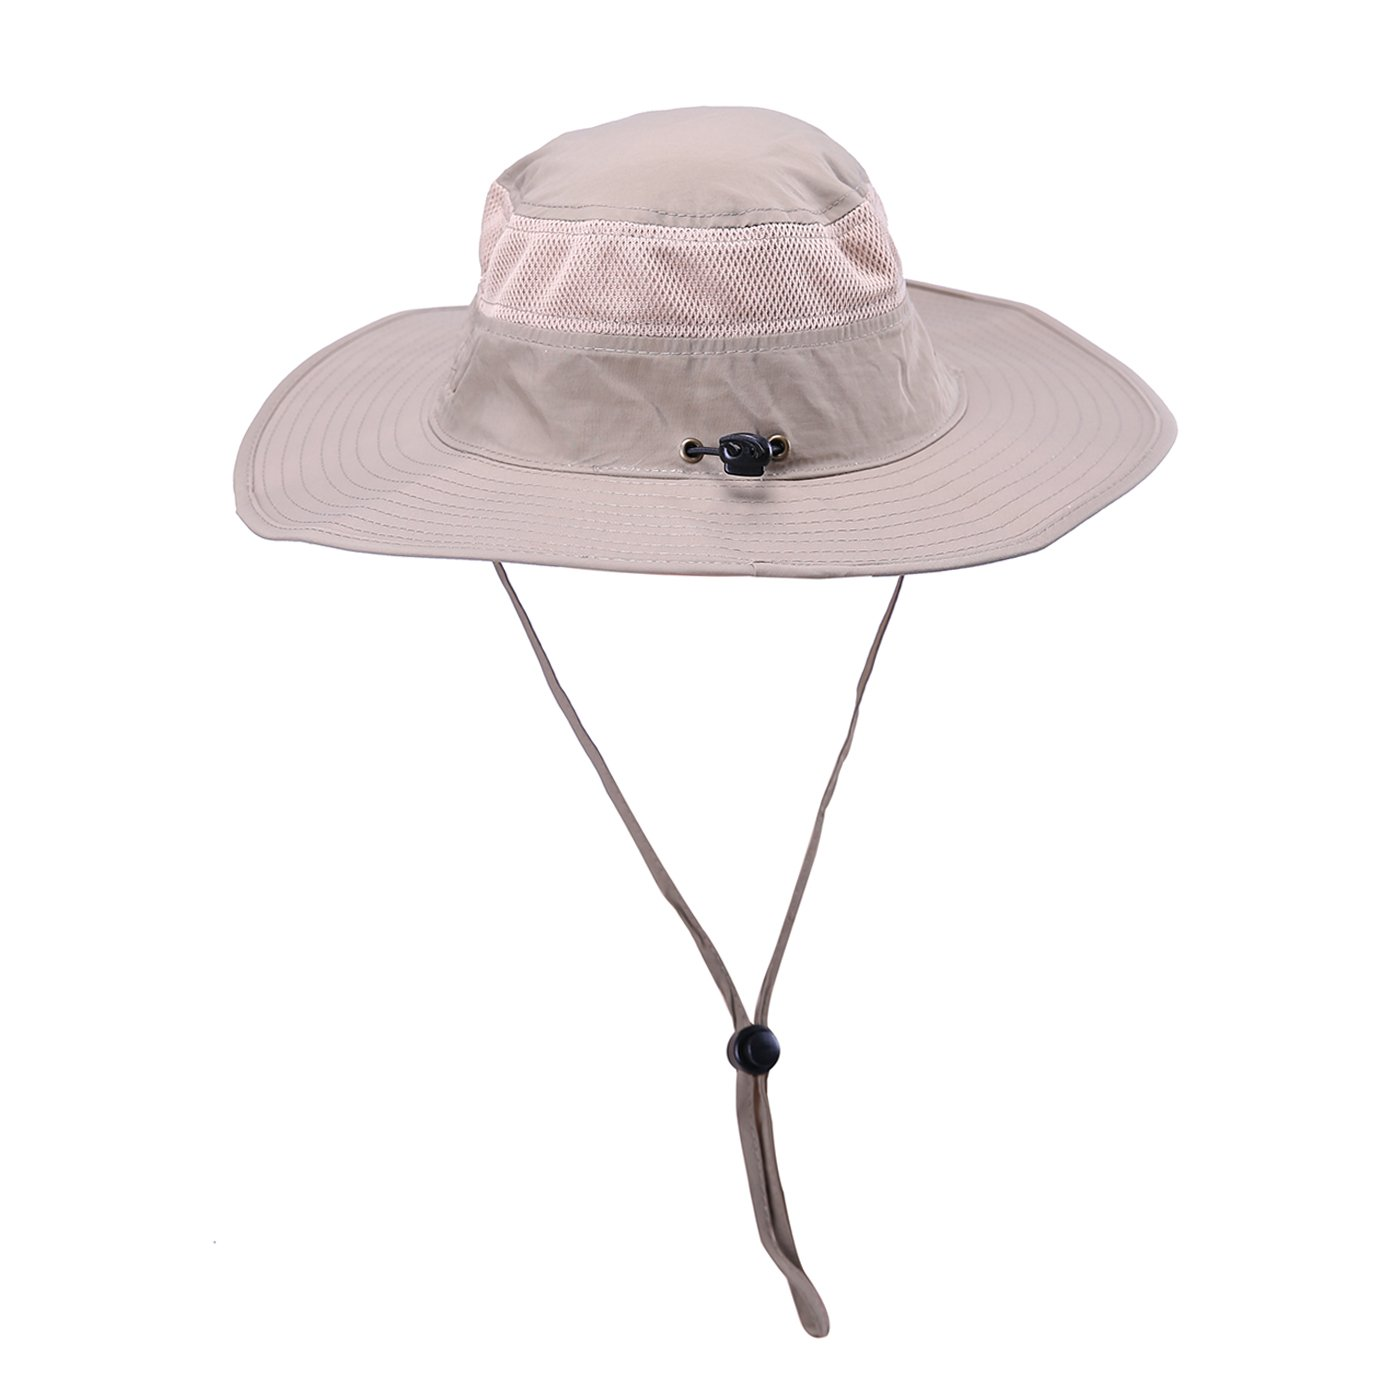 HDE Nylon Boonie Hats for Men – Wide Brim Outdoor Sun Hat Fishing Cap for Boating, Hiking, Summer Sun Protection